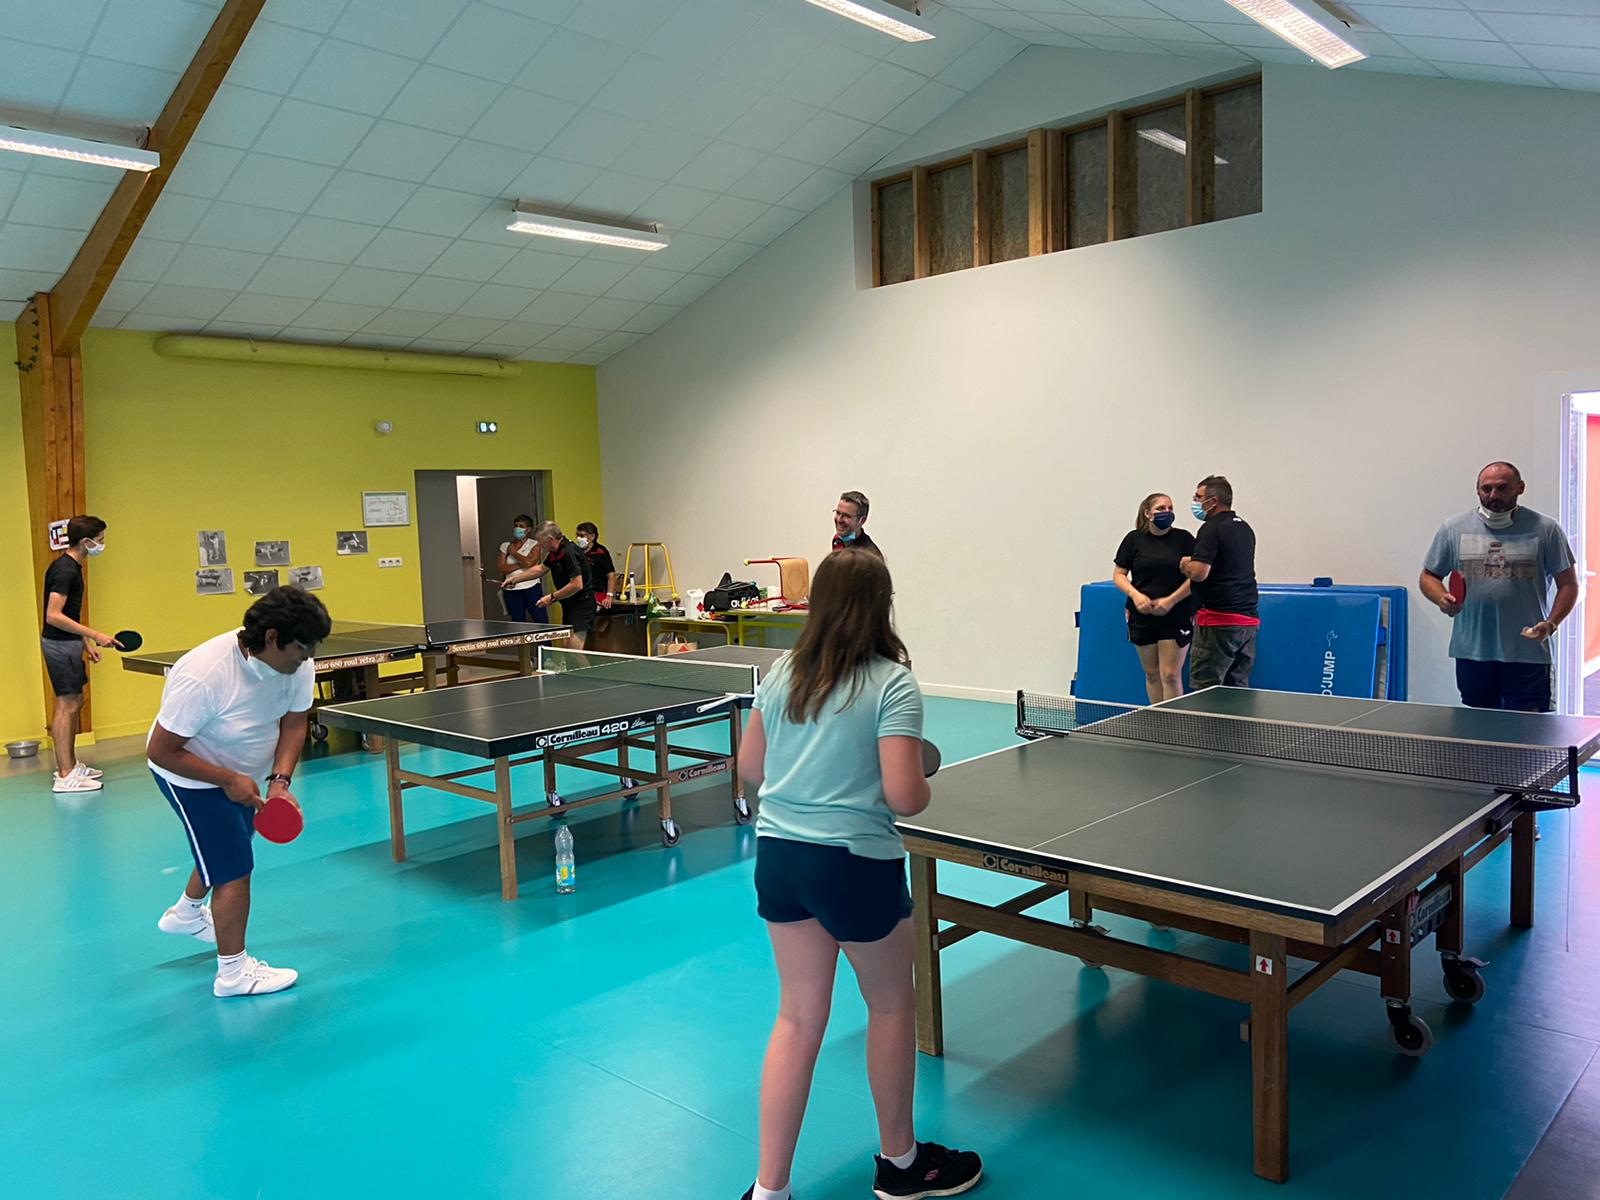 Ping Pong reprise cours sept 2020 2.jpg